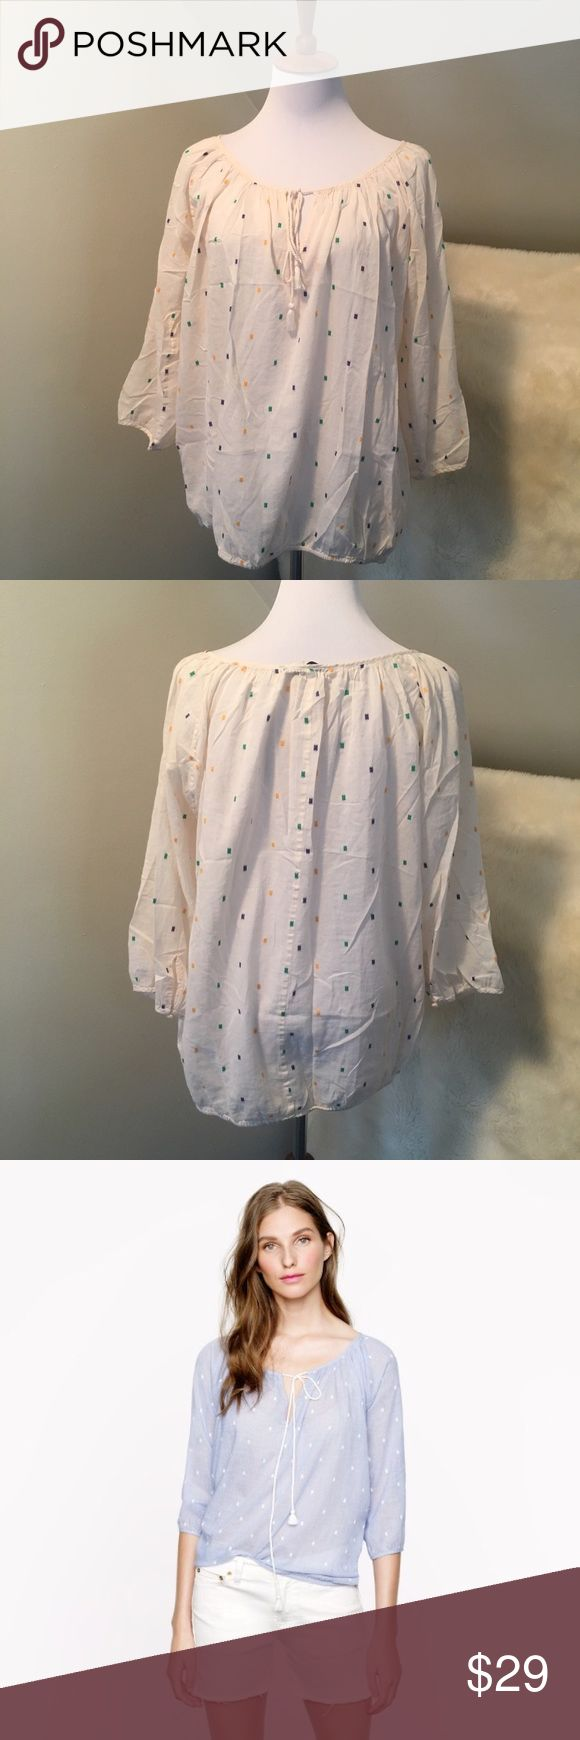 """J. Crew Chambray Square Dot Peasant Top Really pretty lightweight loose fitting cotton blouse. Elastic bottom and sleeves. Great condition. """"Dainty embroidered dots. It's perfected with tailored touches like mother-of-pearl buttons and a swingy little tassel at the neckline for the perfect mix of relaxed and refined. This top was designed to be worn as a beach cover-up—if you'd like to wear it as a top around town, we suggest sizing down."""" Bust is 22"""" across so it would be loose on a medium…"""